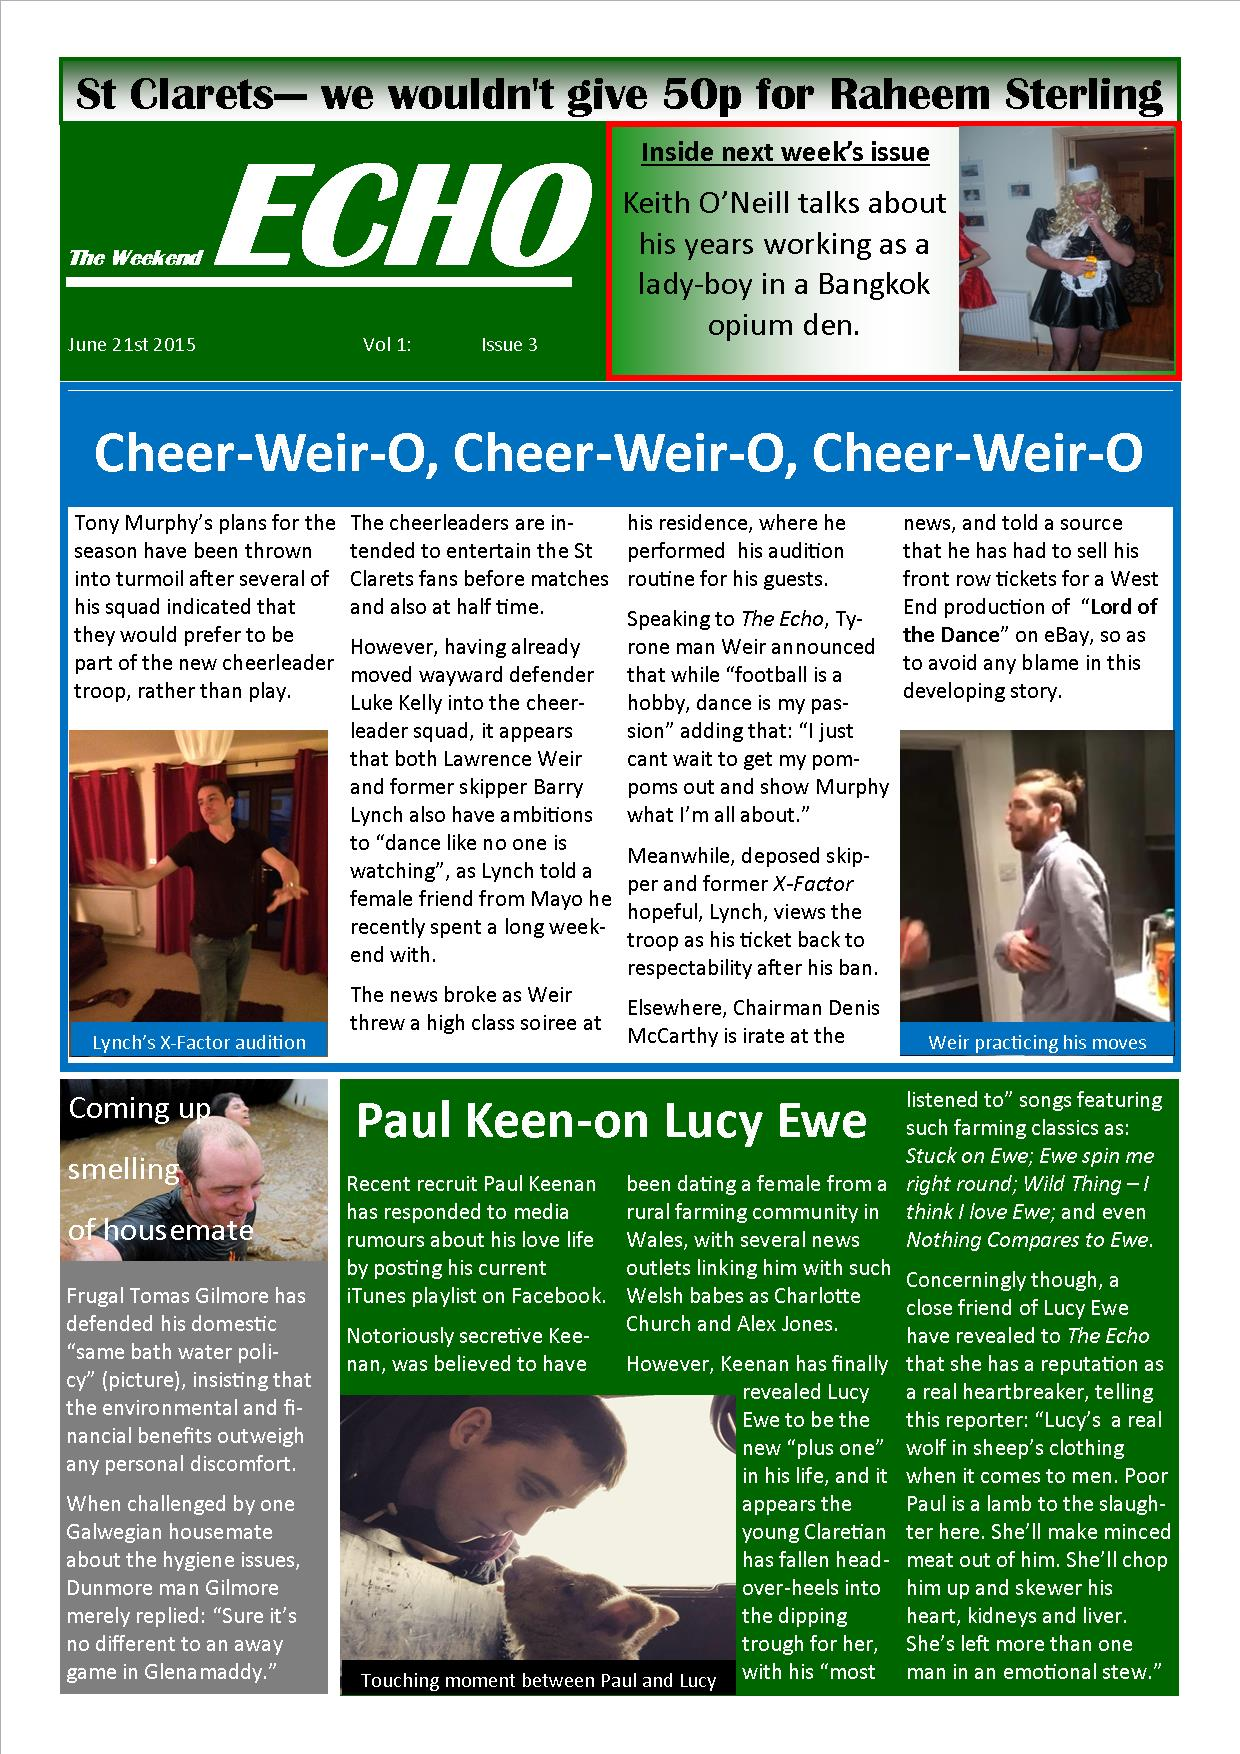 Weekend Echo Issue 3. The weekly newsletter from St Clarets GFC in London. London's best GAA club. A Gaelic football club to be proud of.